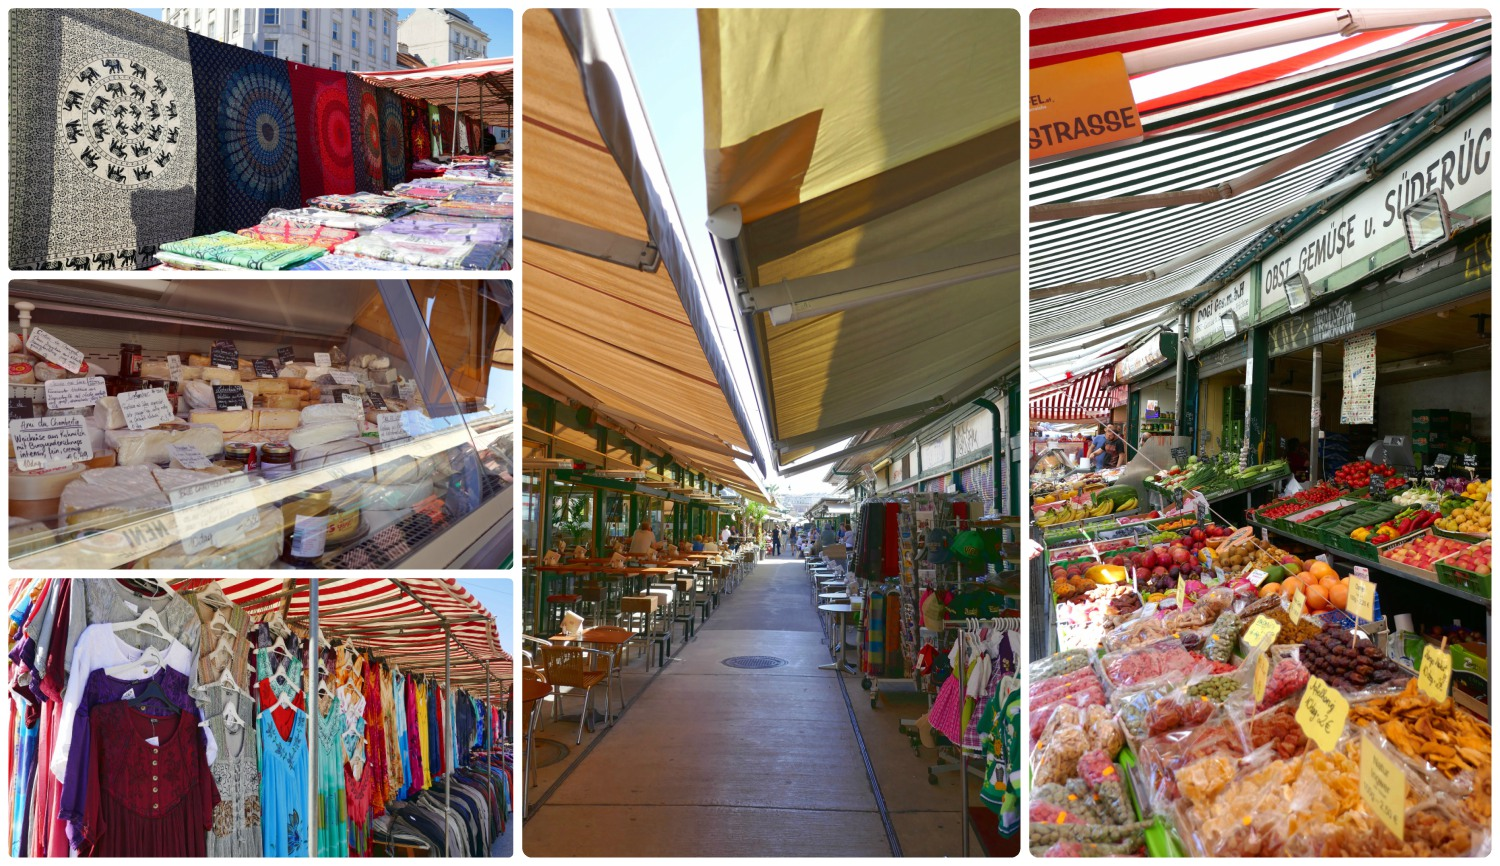 There's a huge variety of shops at Naschmarkt! Come to shop, eat, or people watch!